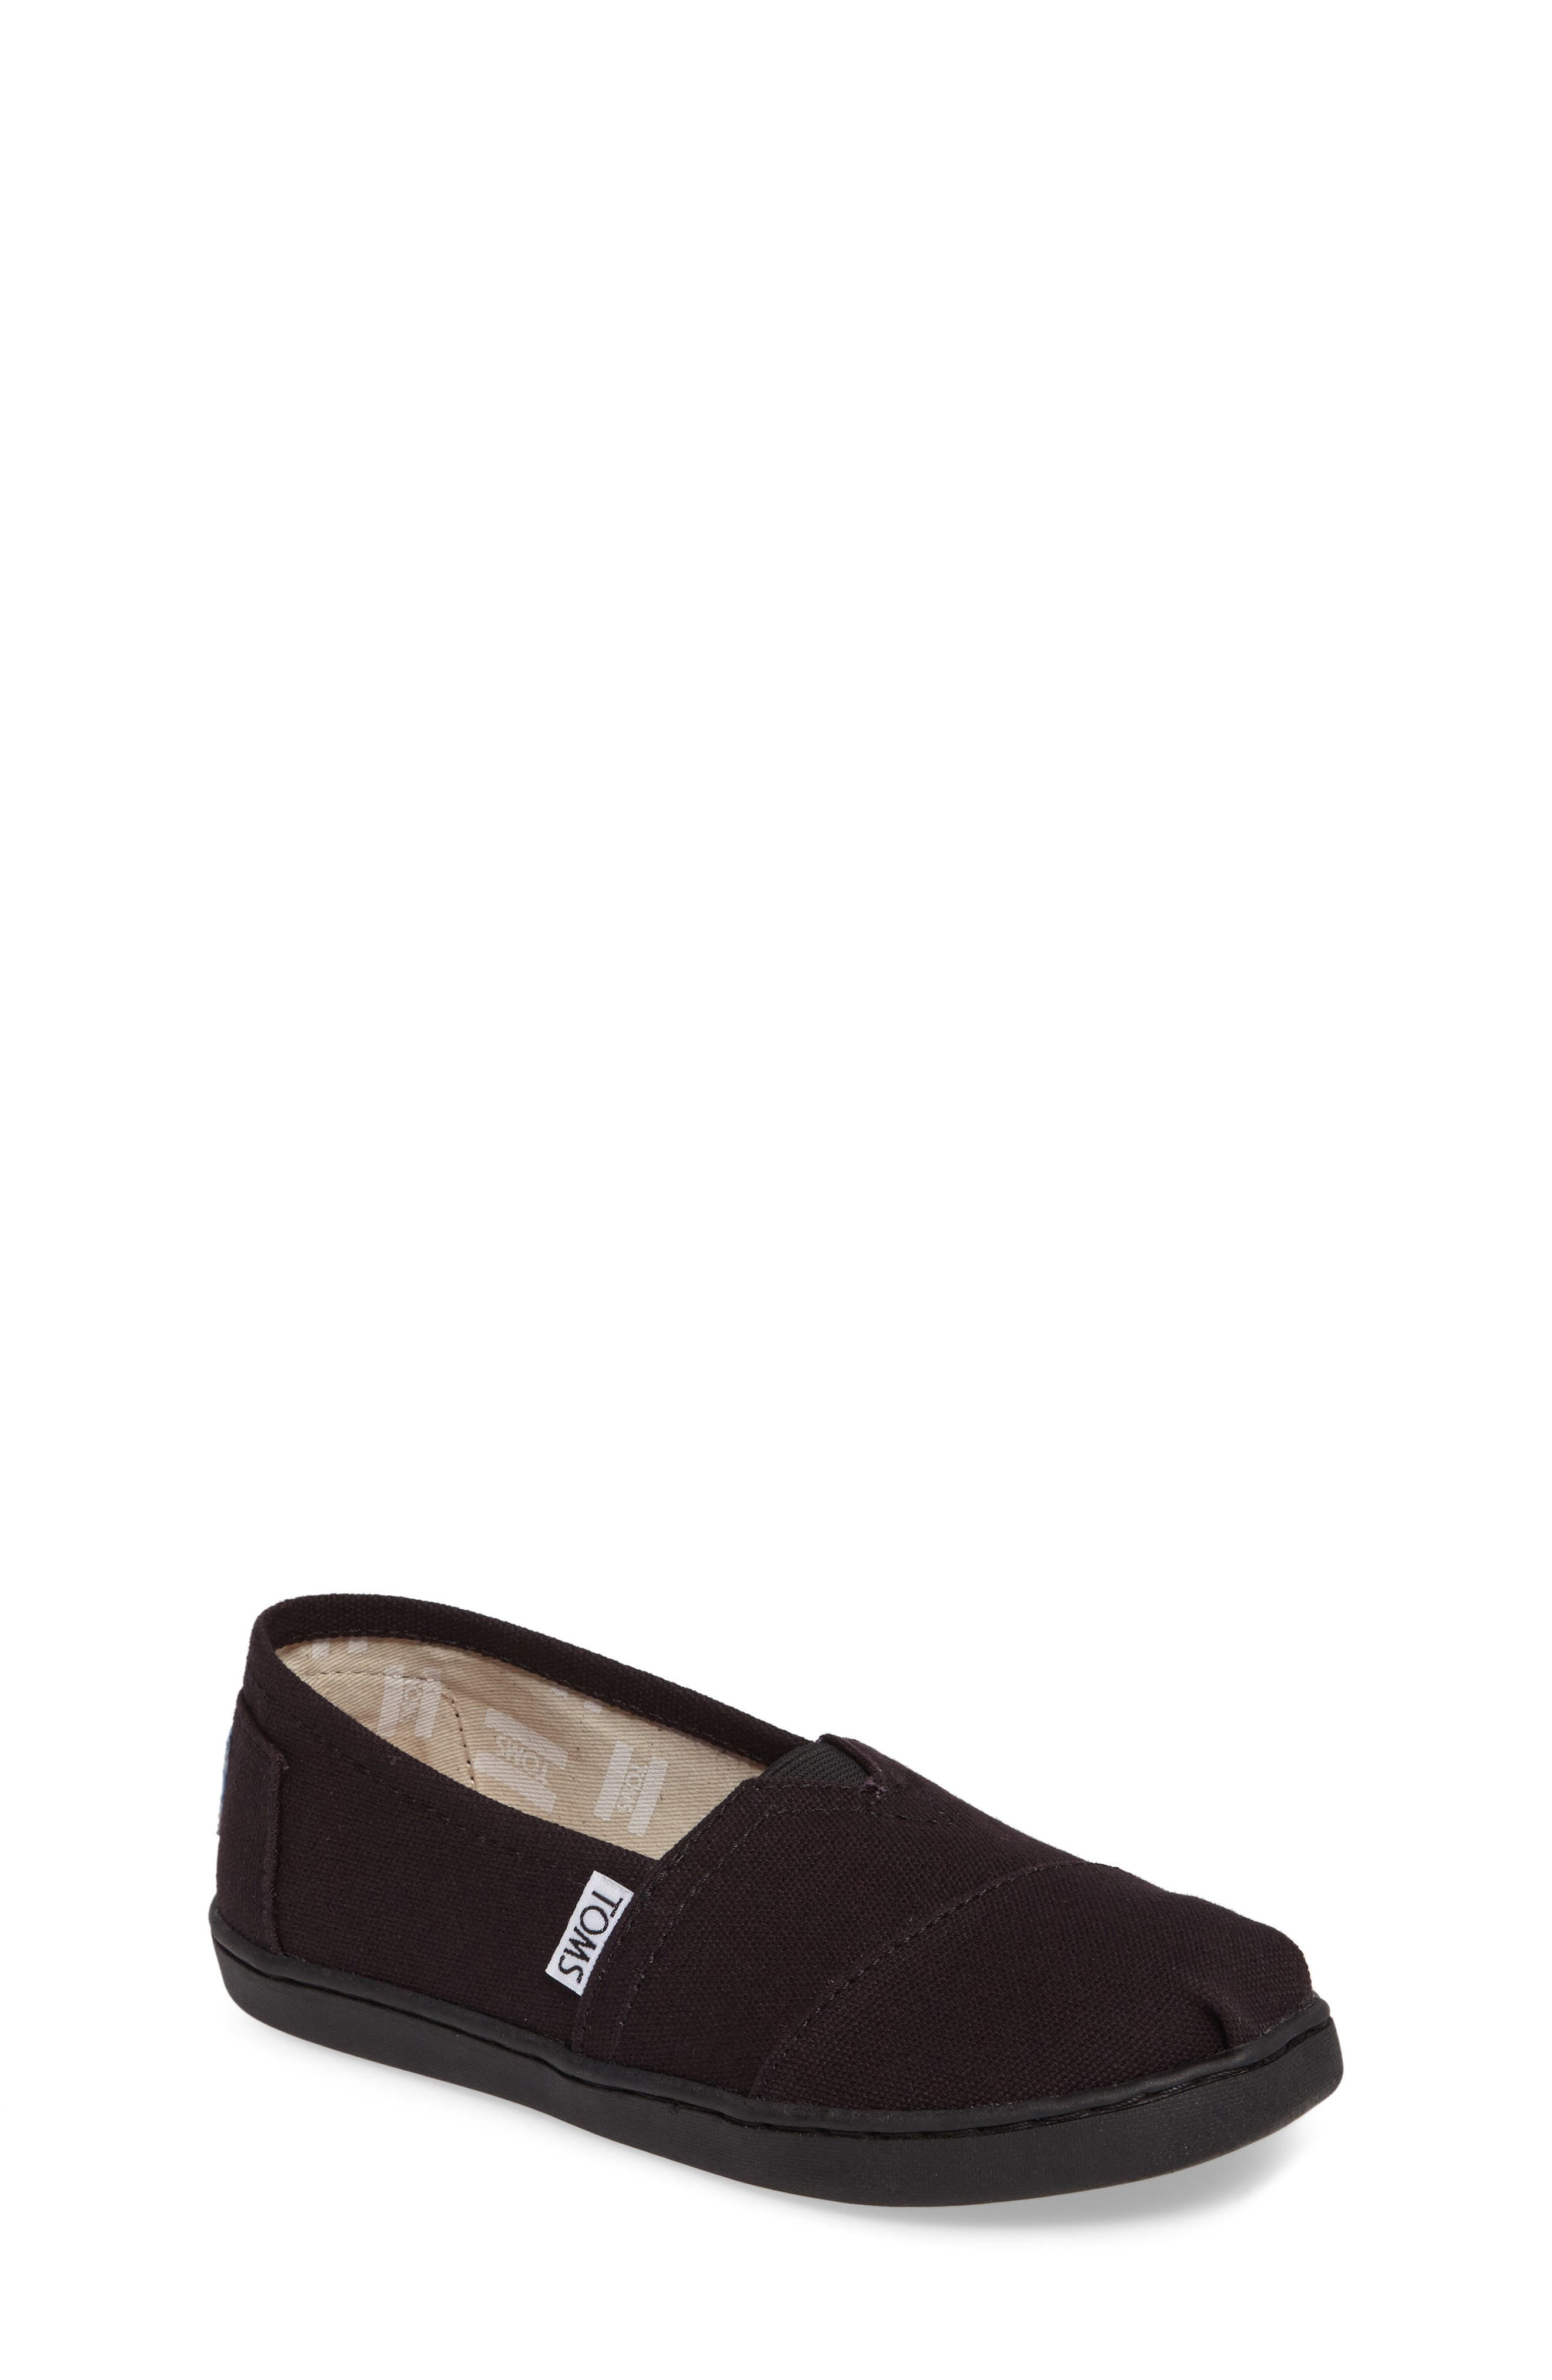 2.0 Classic Alpargata Slip-On,                         Main,                         color, Black Canvas